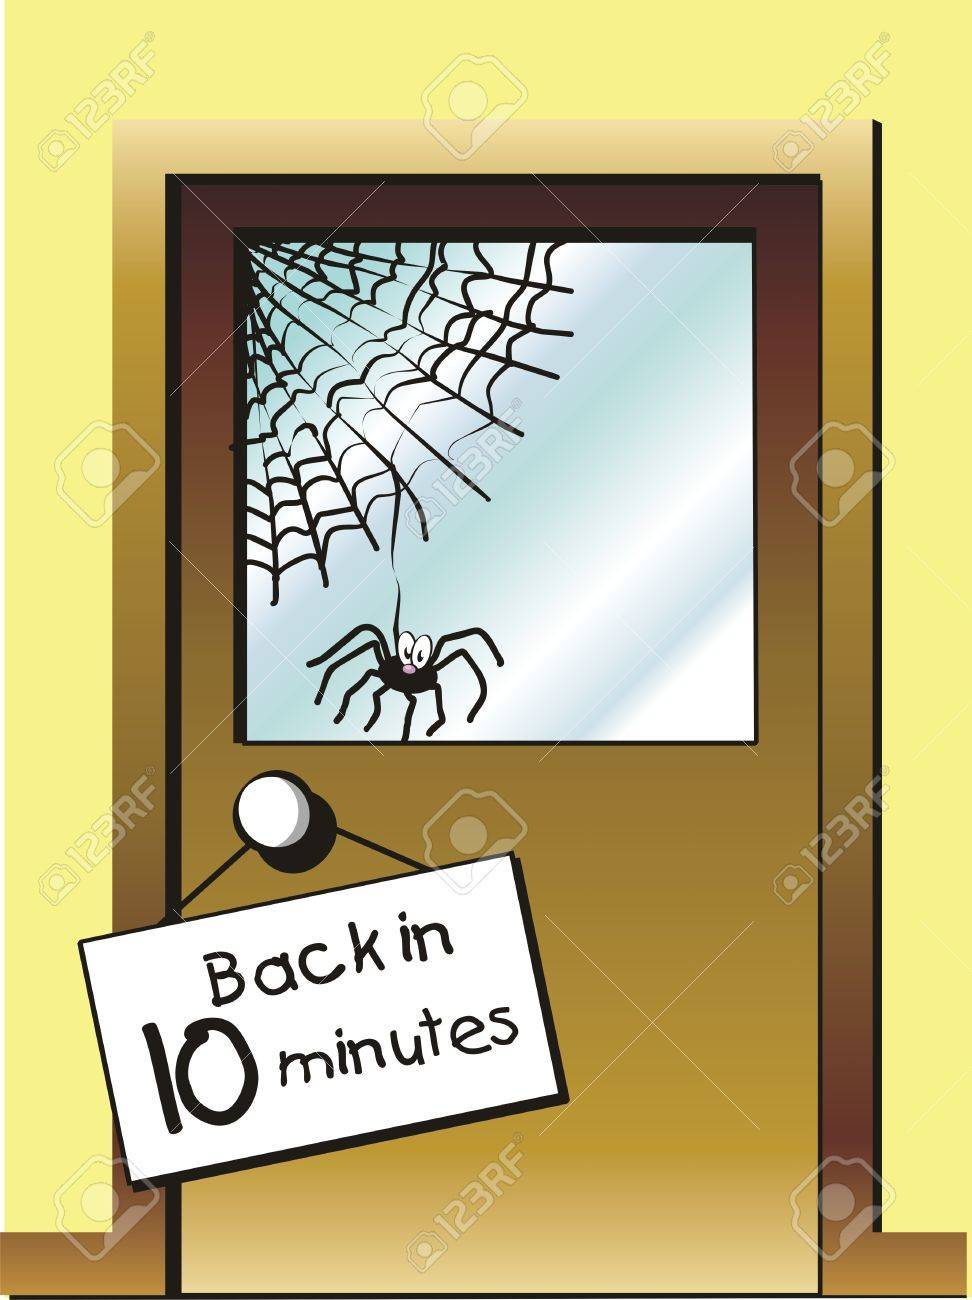 Customer service. There is no one to serve customers. Fatal notice, Back in 10 minutes. Stock Vector - 21984167